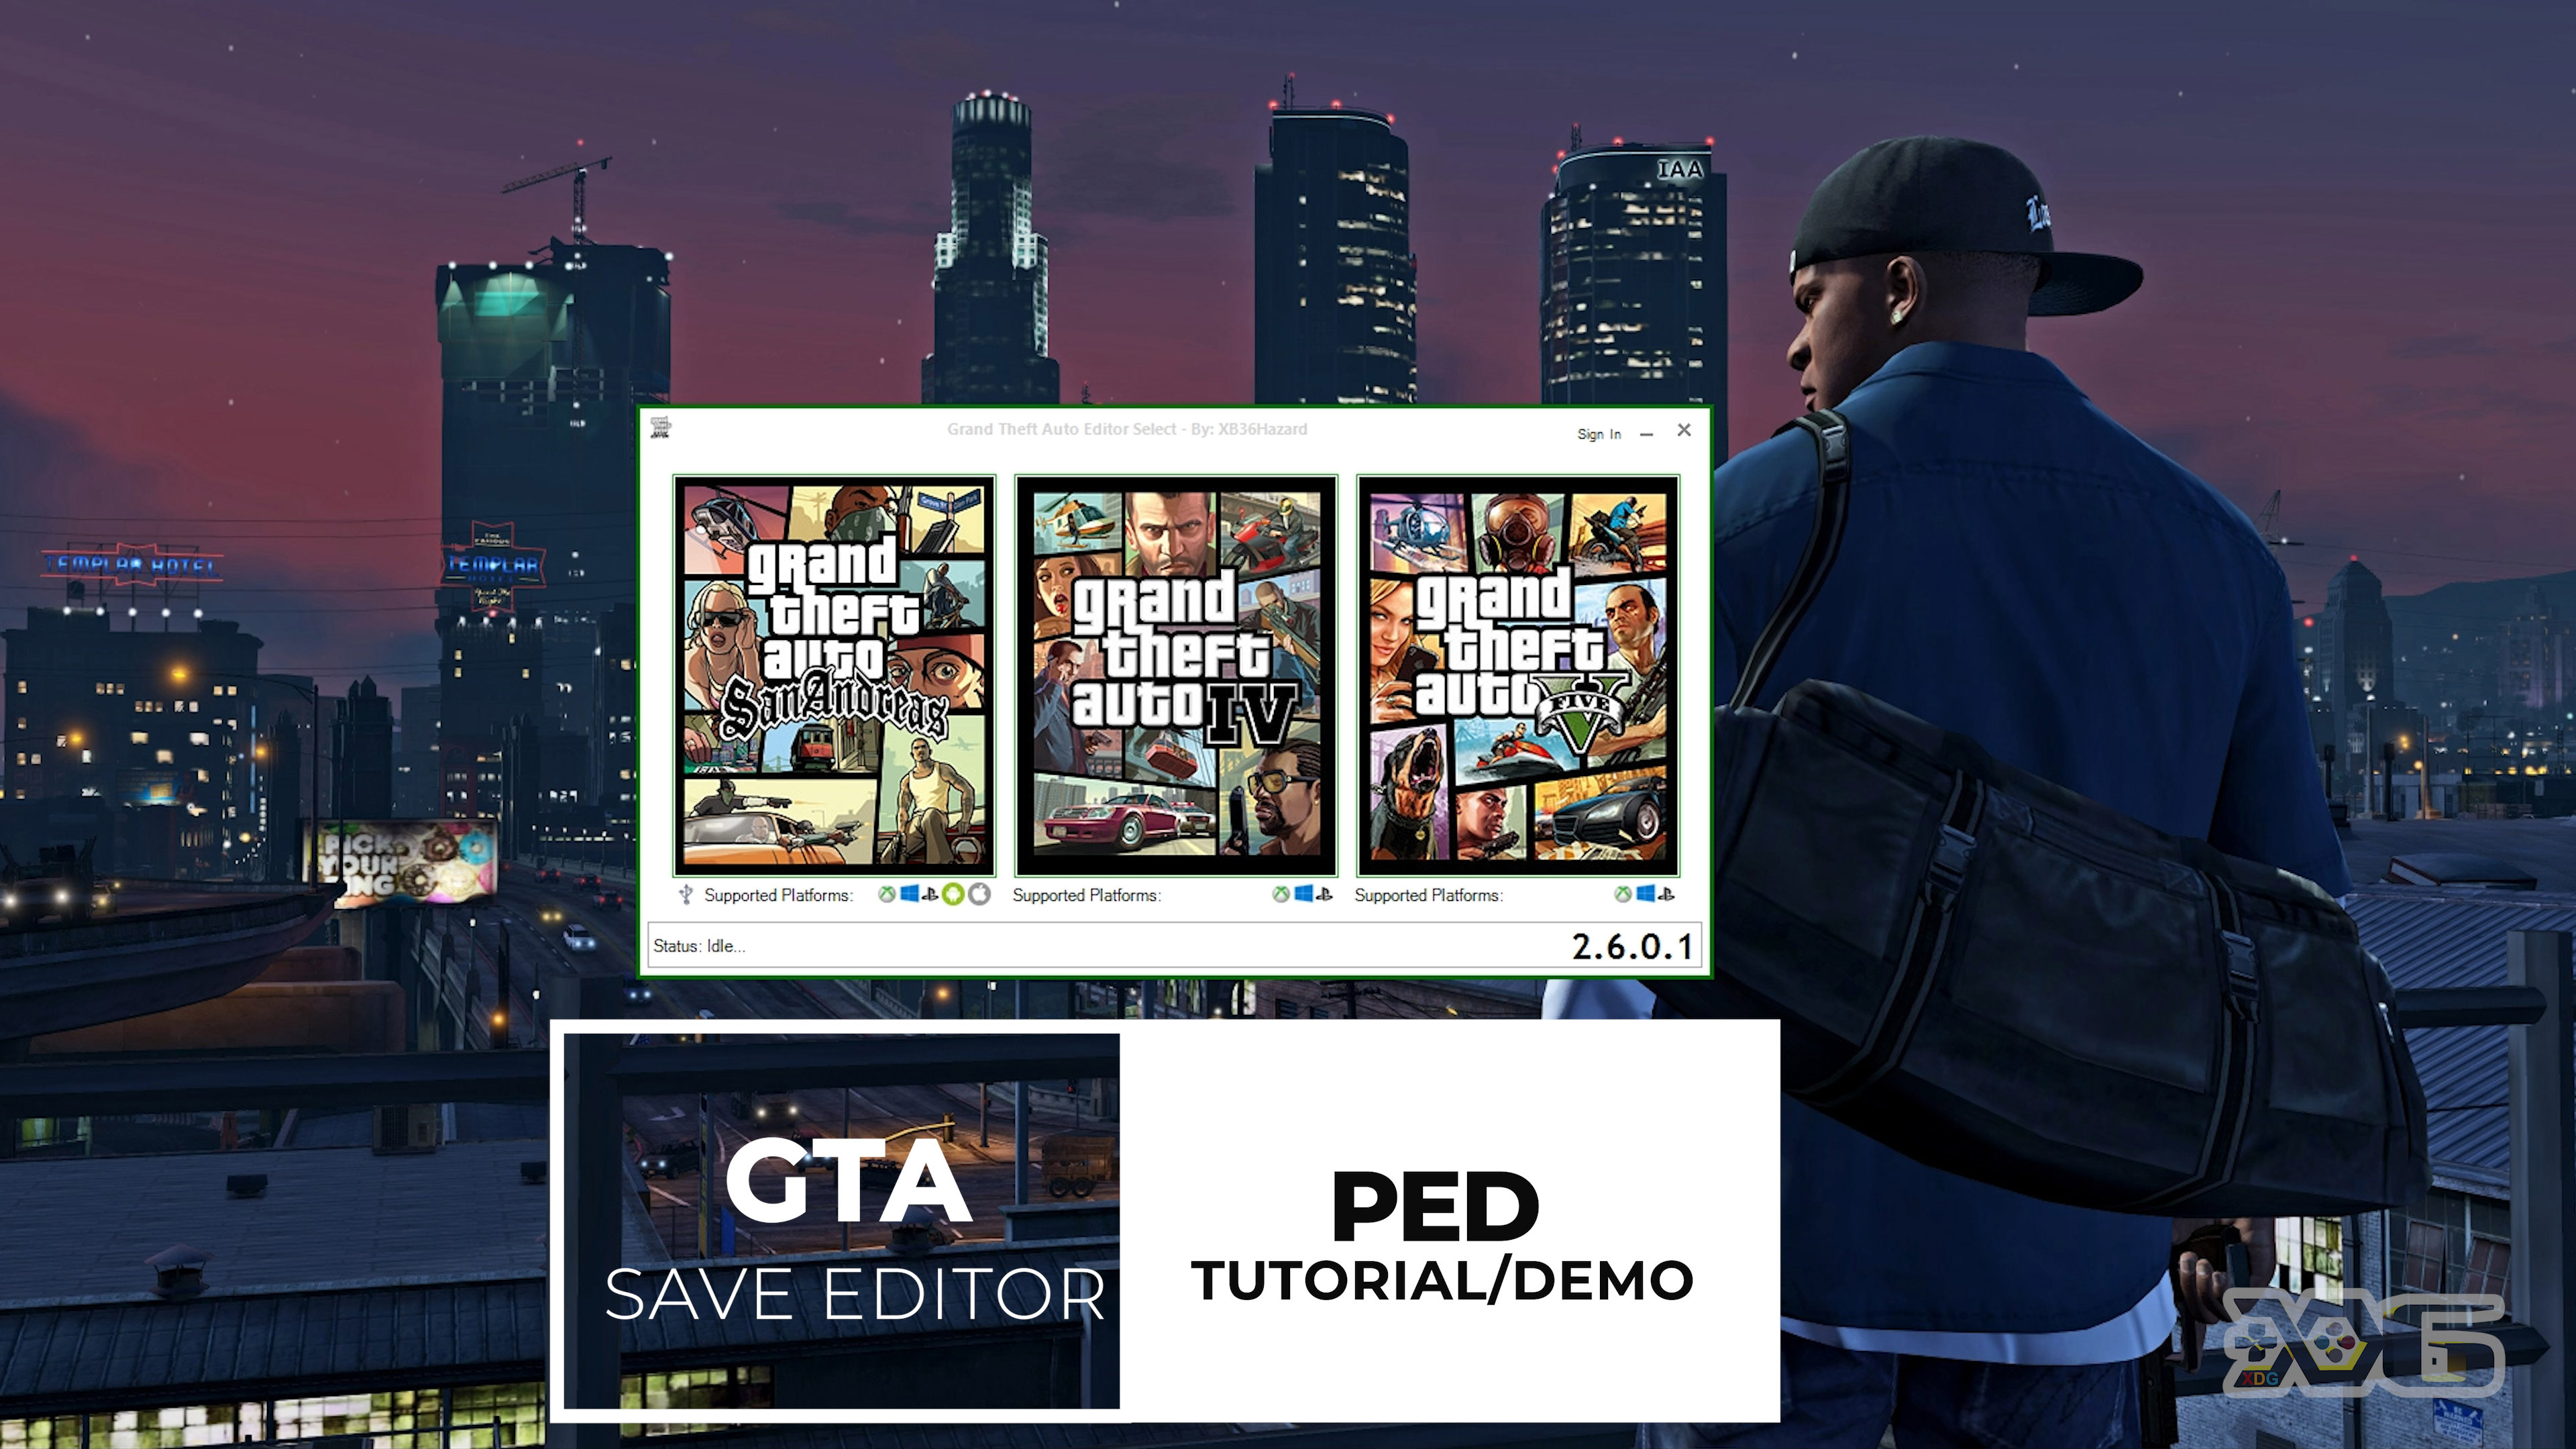 PED Editor Tutorial (How to Use PED Section in the GTA Save